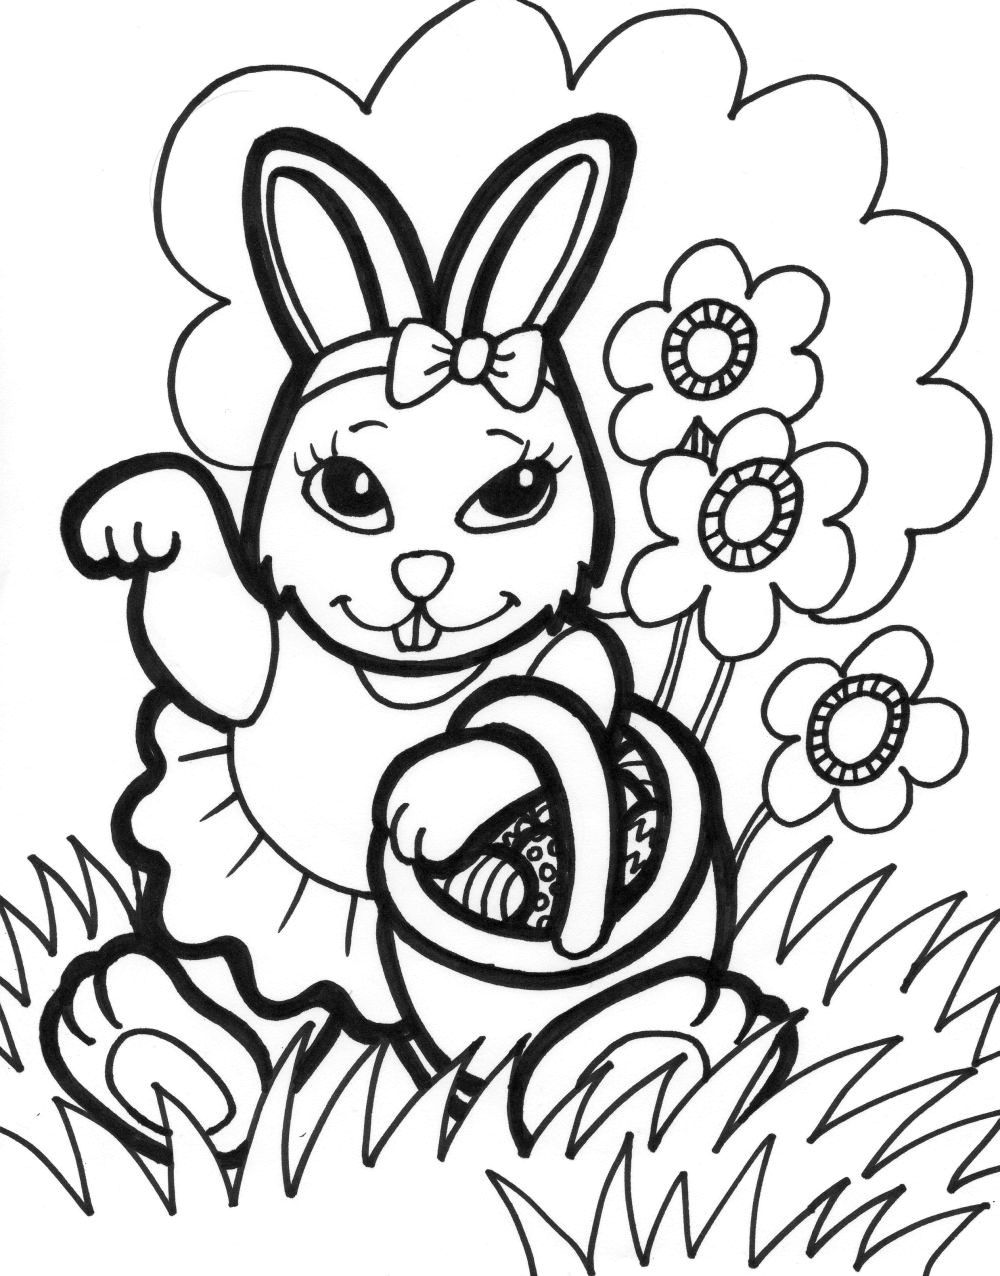 Easter Bunny Coloring Pages Easter Bunny Coloring Pages Coloringpages Coloring Coloringbo Bunny Coloring Pages Easter Bunny Colouring Animal Coloring Pages